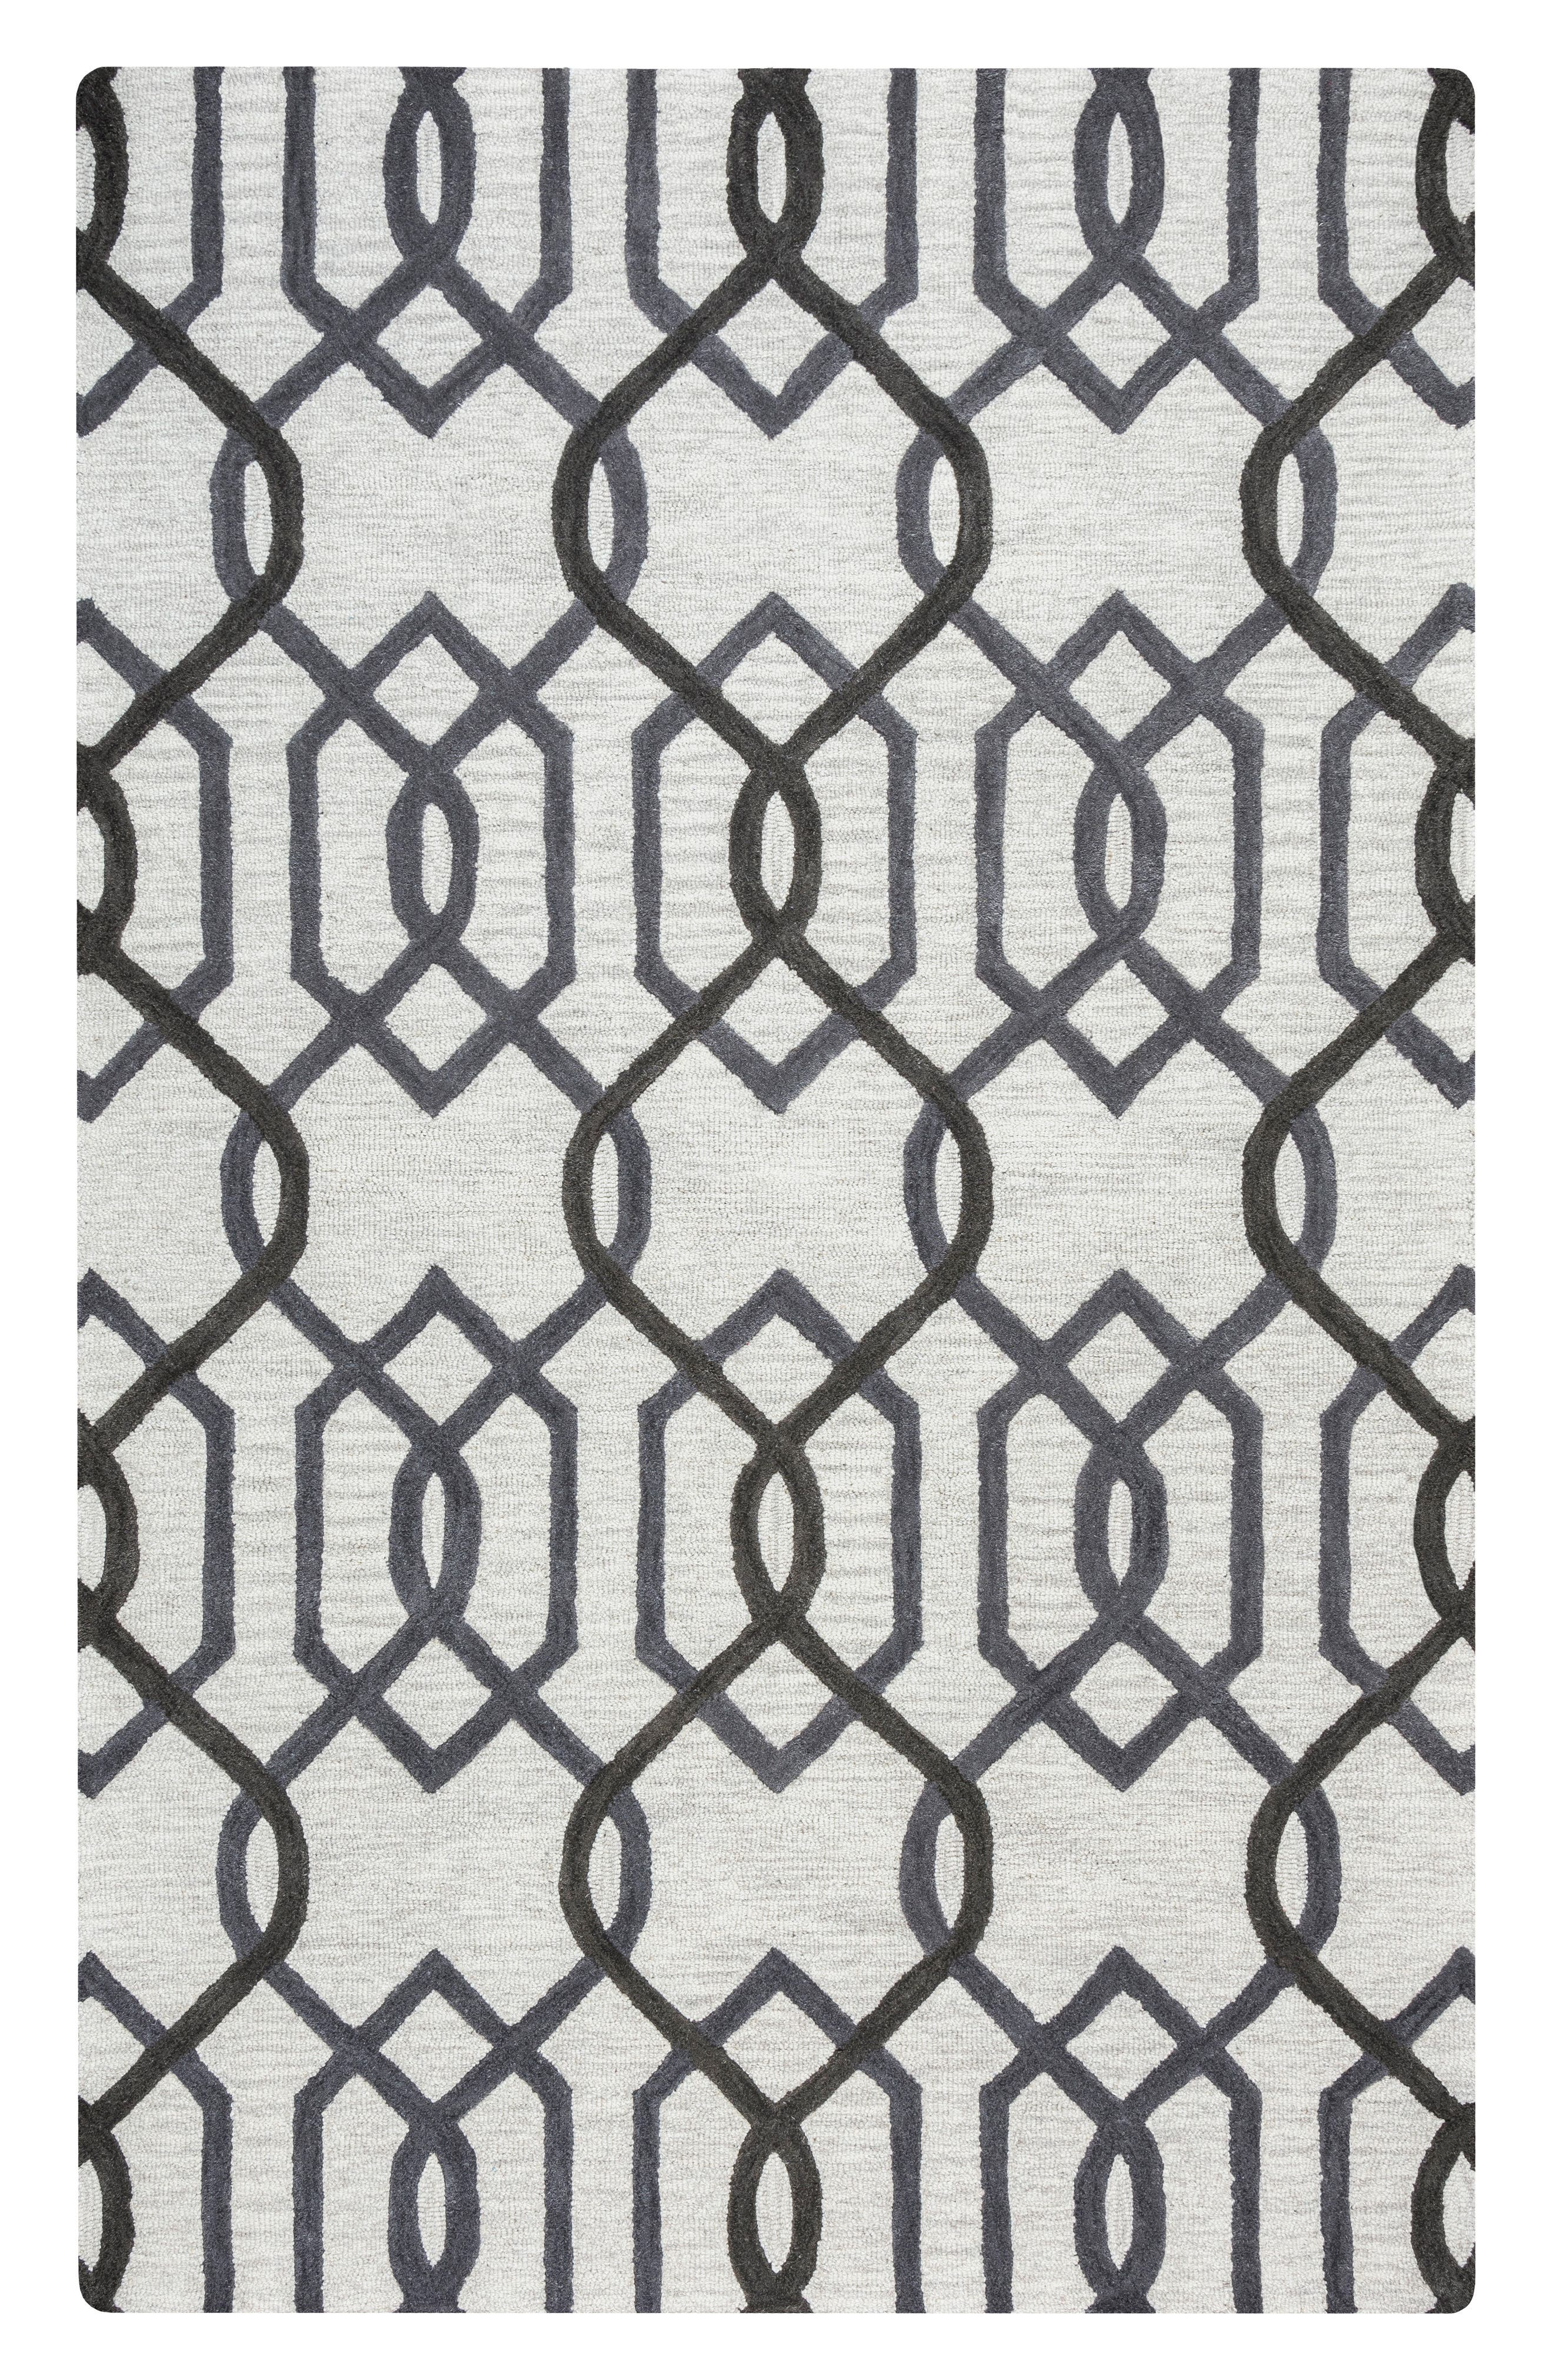 'Caterine Lines' Hand Tufted Wool Area Rug,                         Main,                         color, Grey